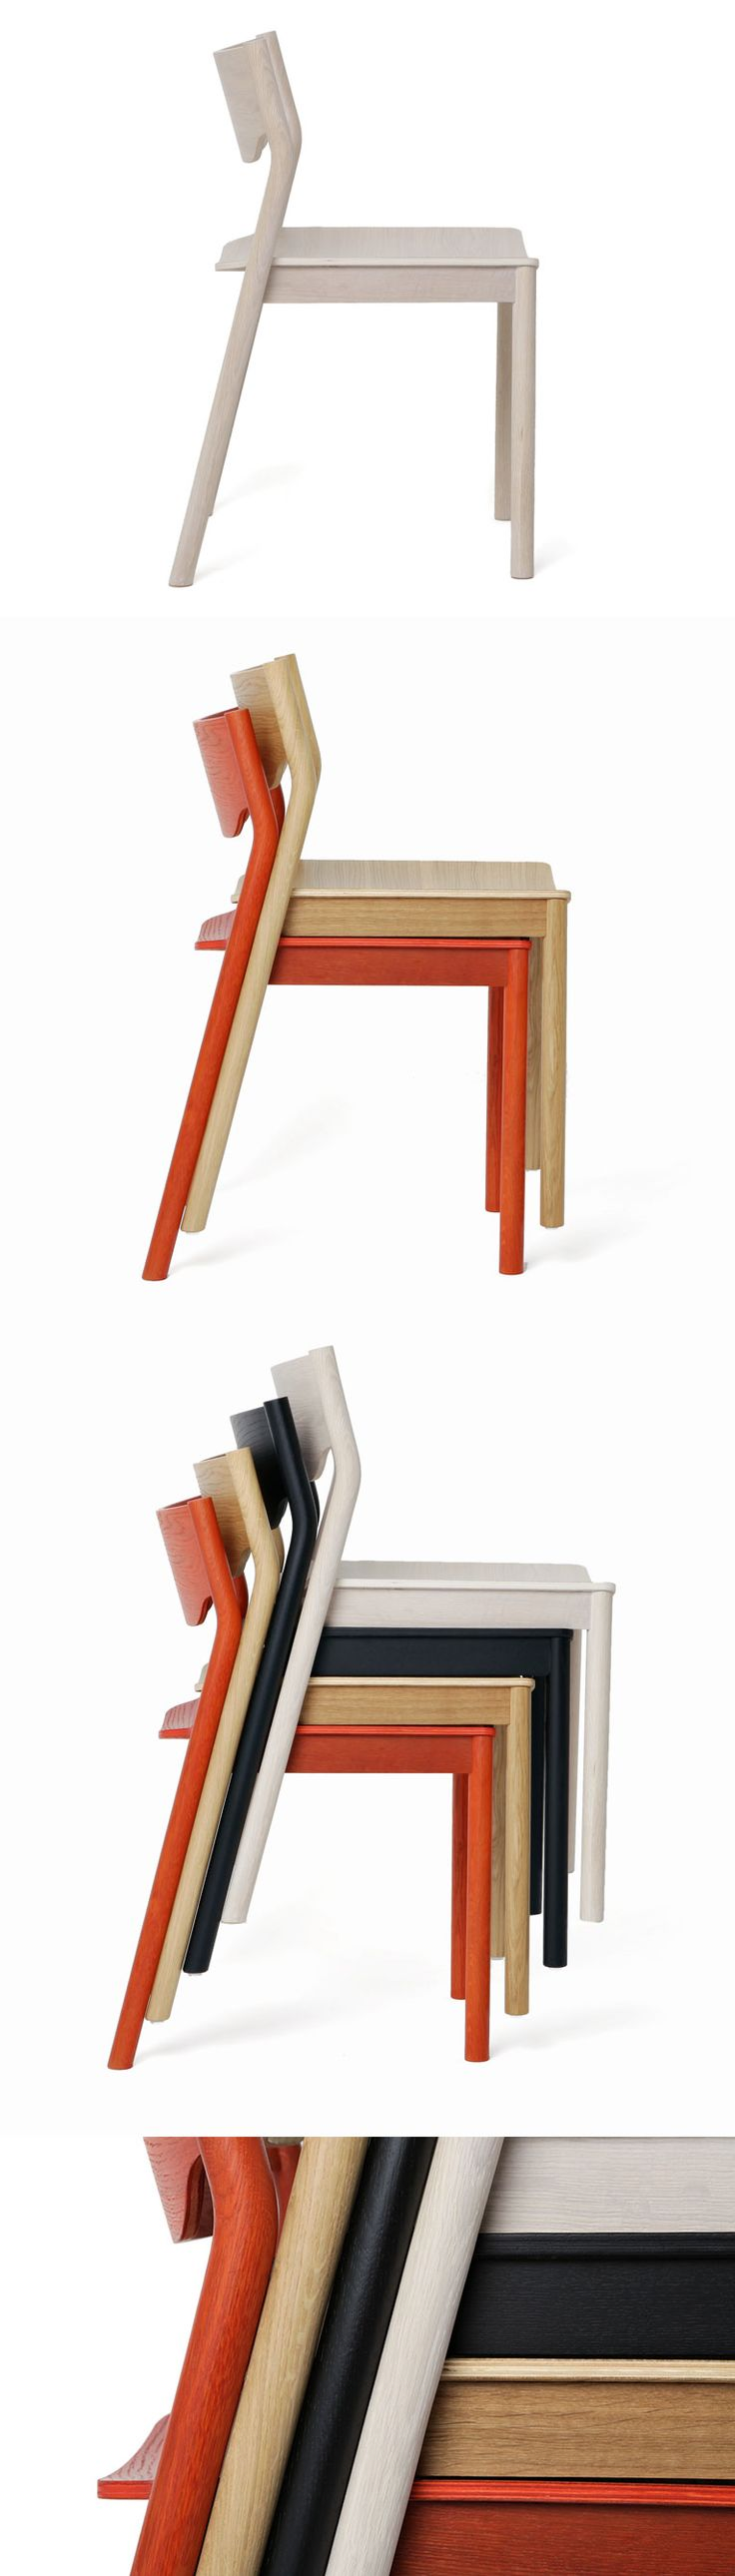 Lightweight stackable chairs - Find This Pin And More On Nathrop Tangerine Stackable Chairs